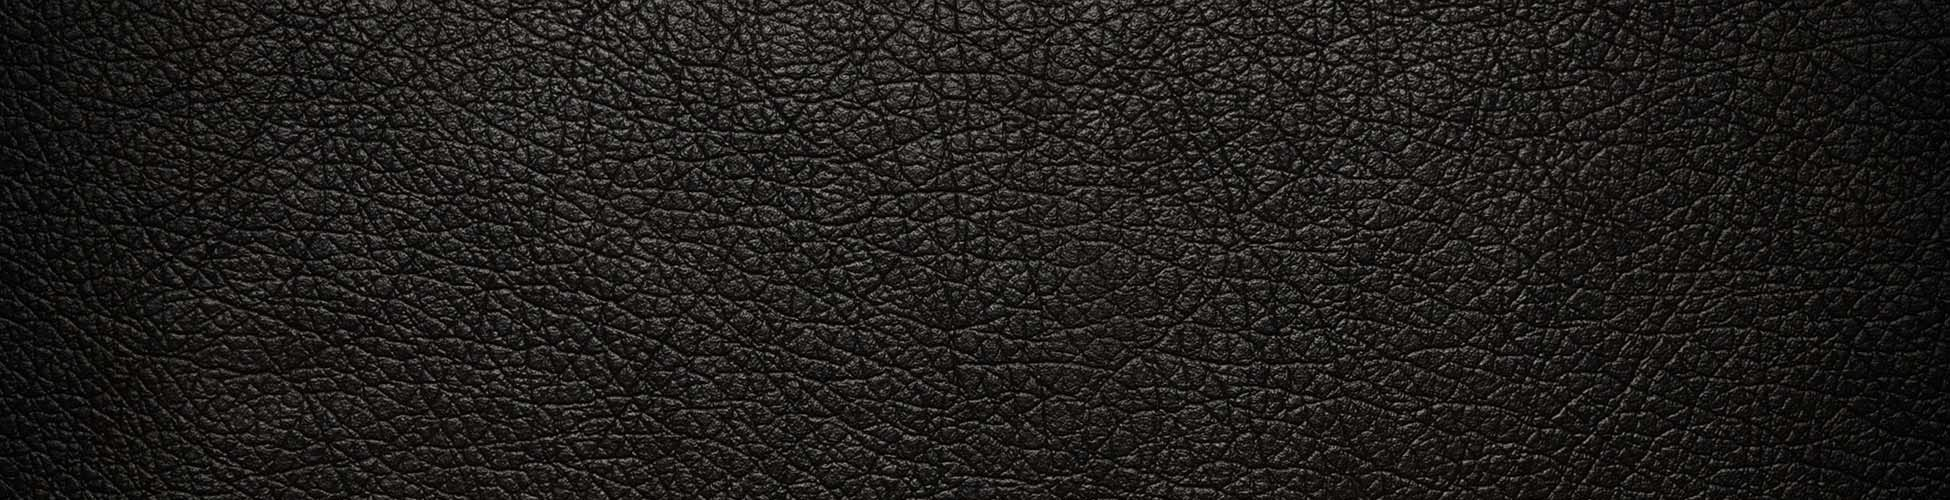 cropped-cropped-cropped-leather-black-cracked-background-texture1.jpg